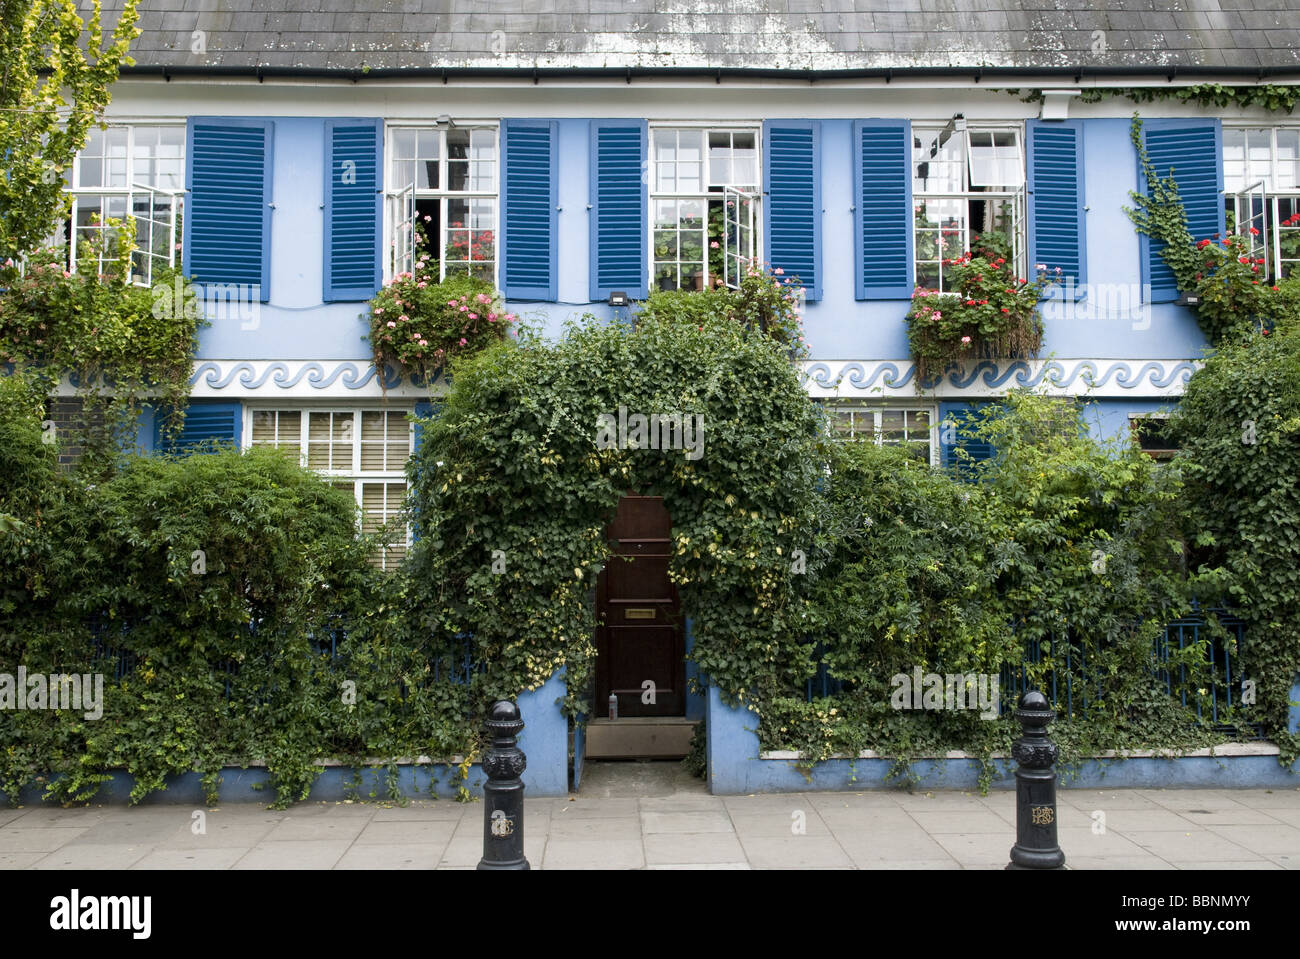 geography / travel, Great Britain, London, Notting Hill, Portobello Road, cottage, Additional-Rights-Clearance-Info - Stock Image